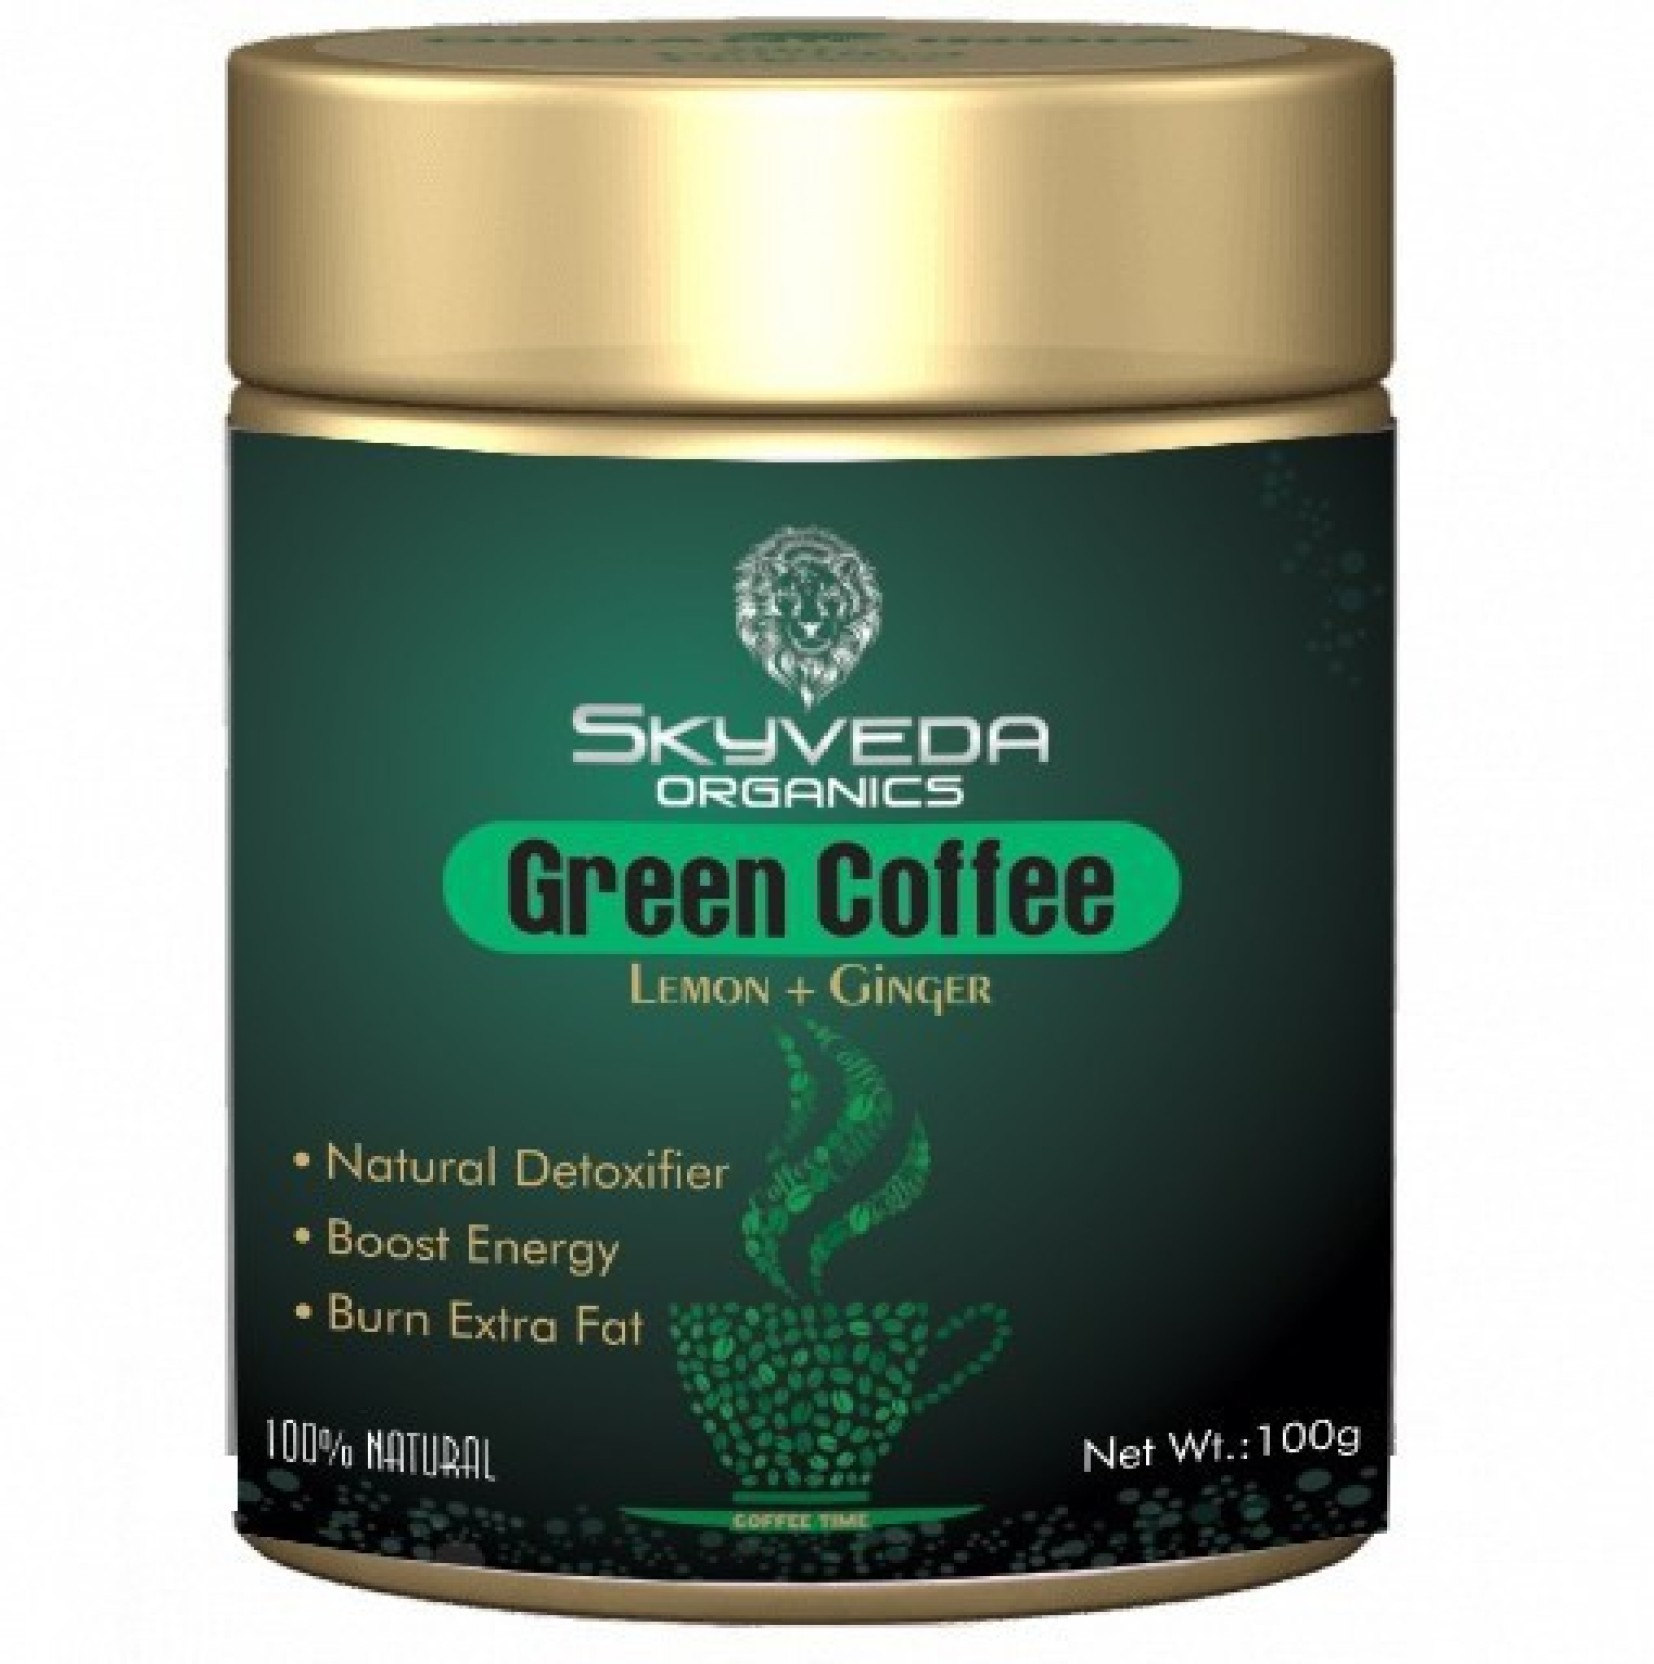 Skyveda Organics Green Coffee Beans Powder For Weight Loss Best Fat Capsule Pure Arabica Organic 60 Caps Add To Cart